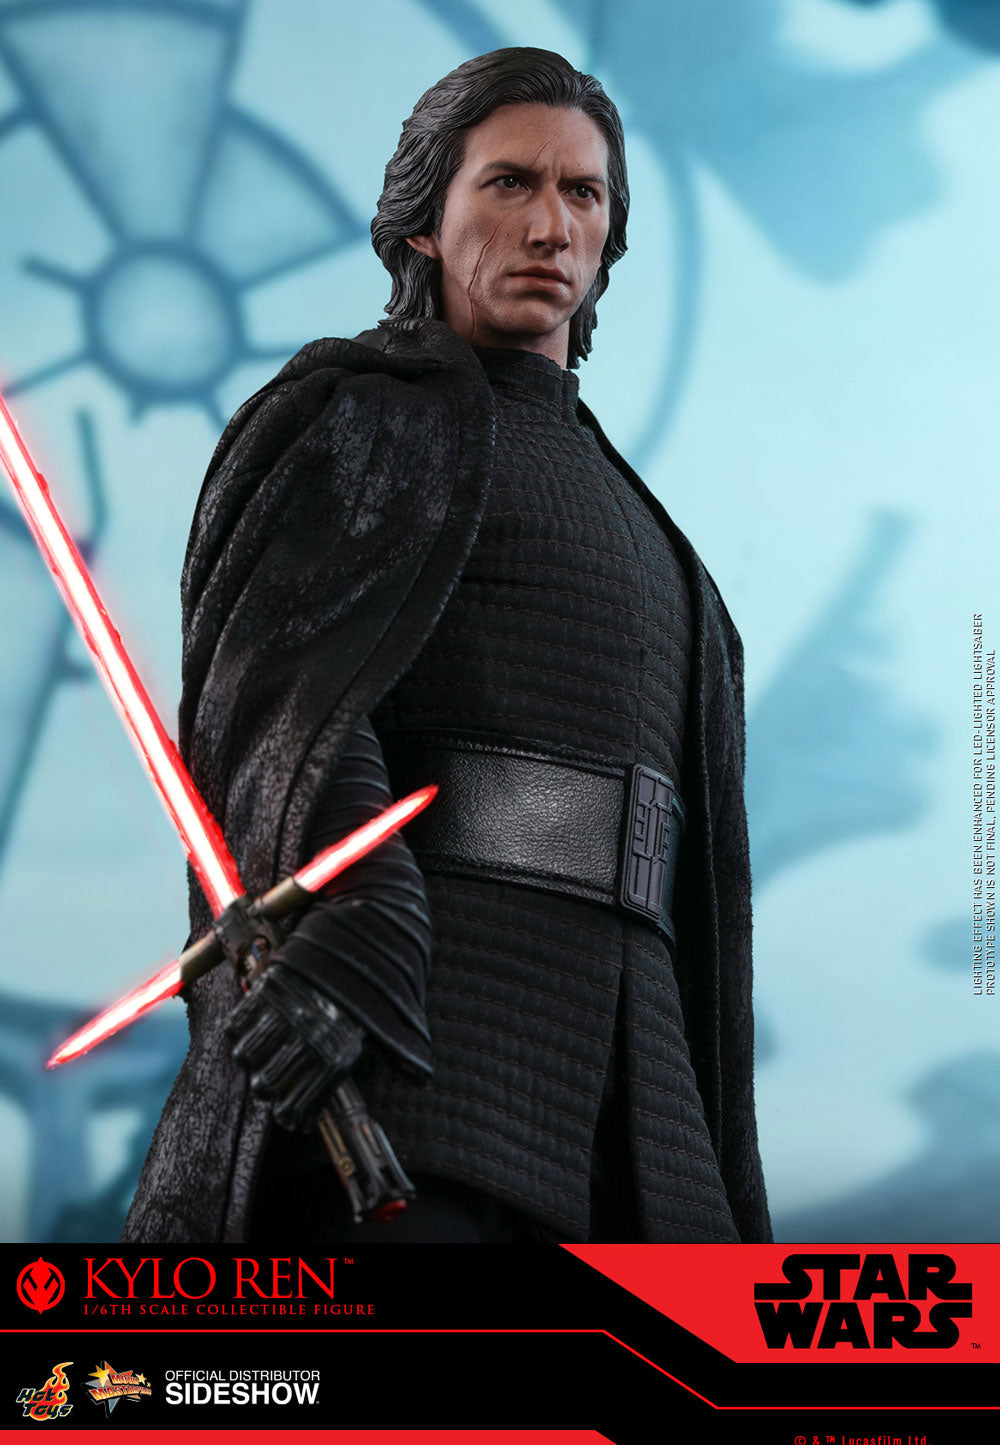 Kylo Ren The Rise of Skywalker Sixth Scale Figure - Collectors Row Inc.